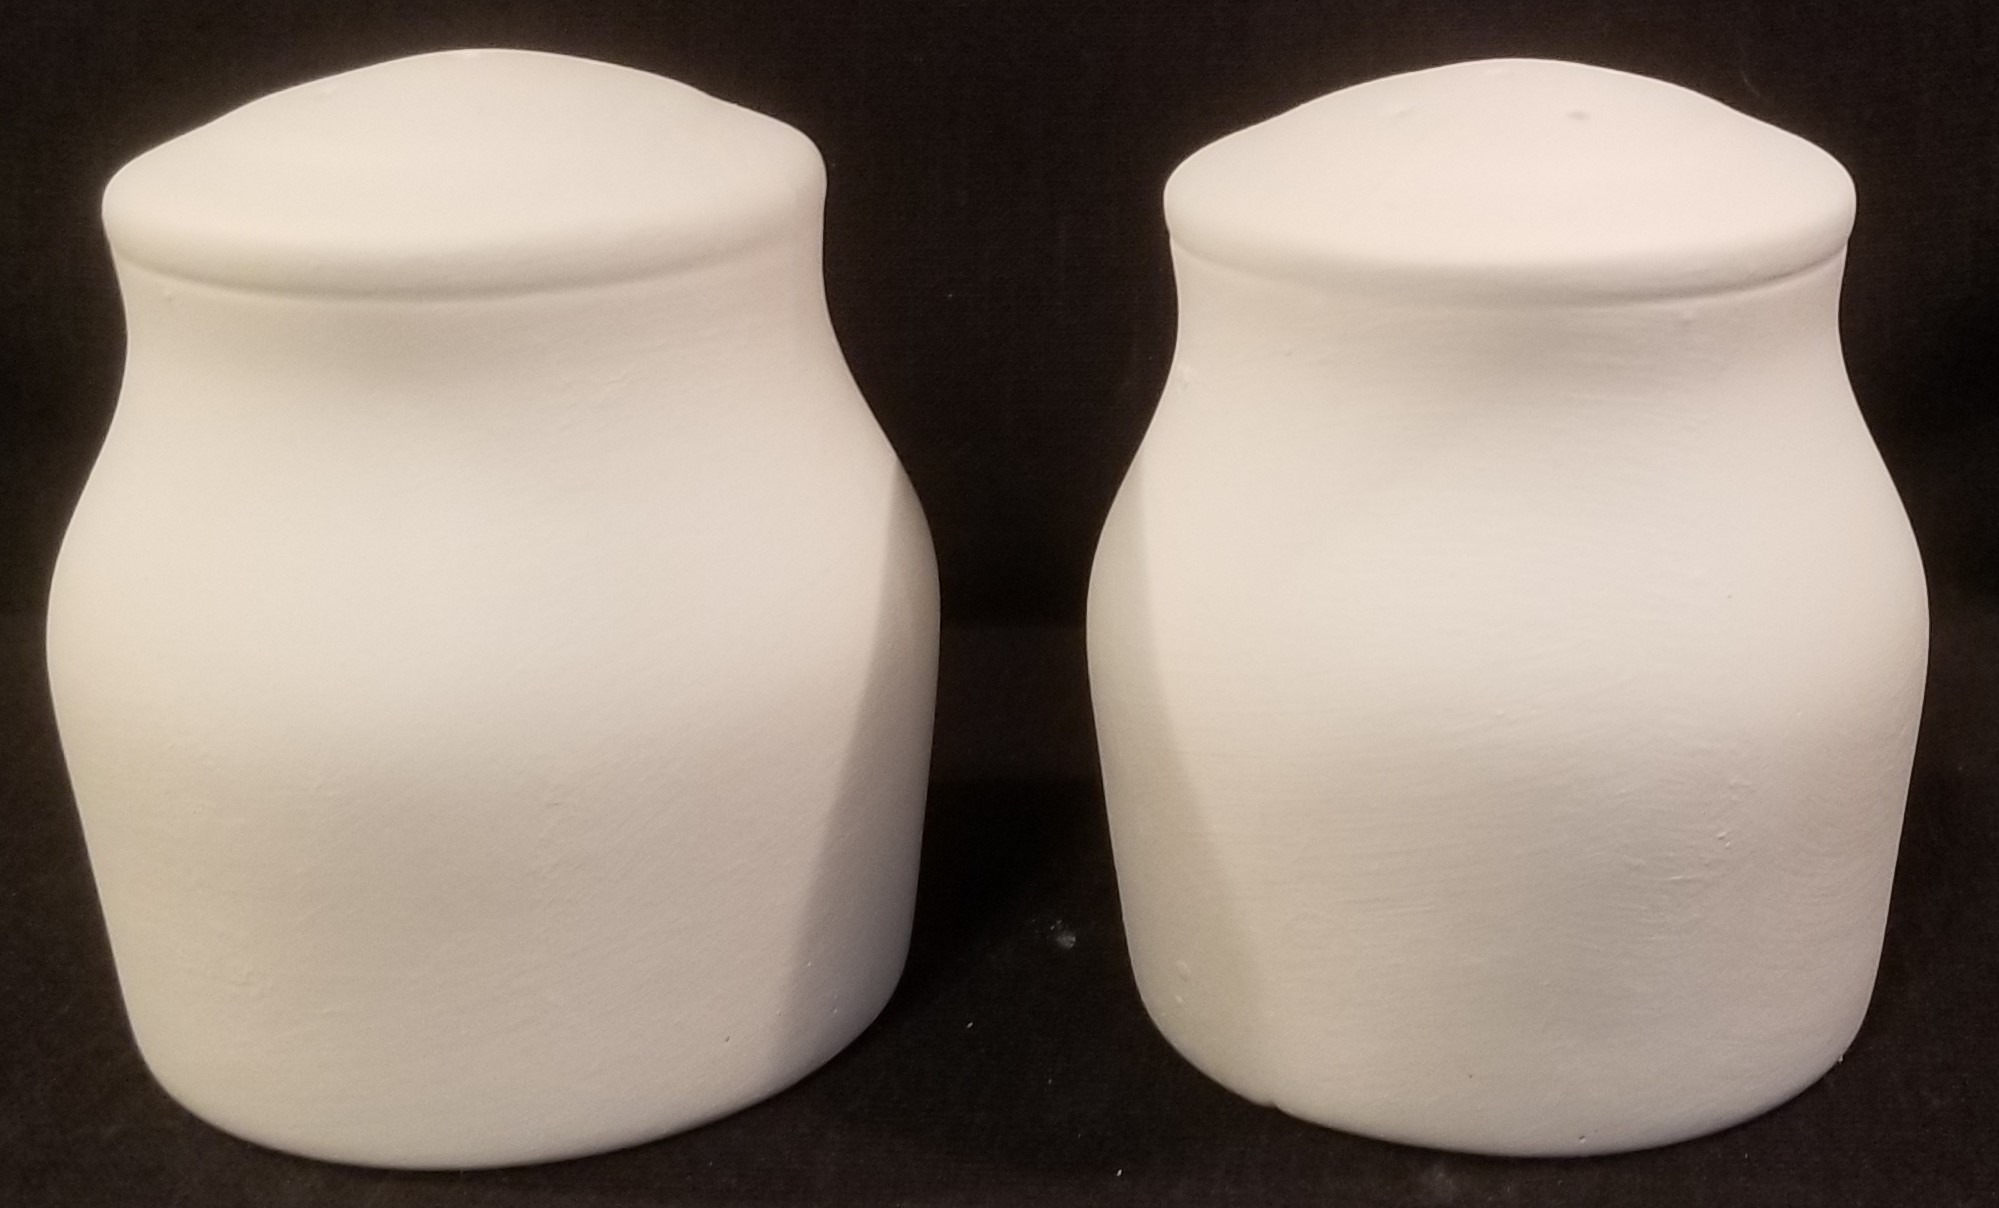 Salt and pepper shakers - plain